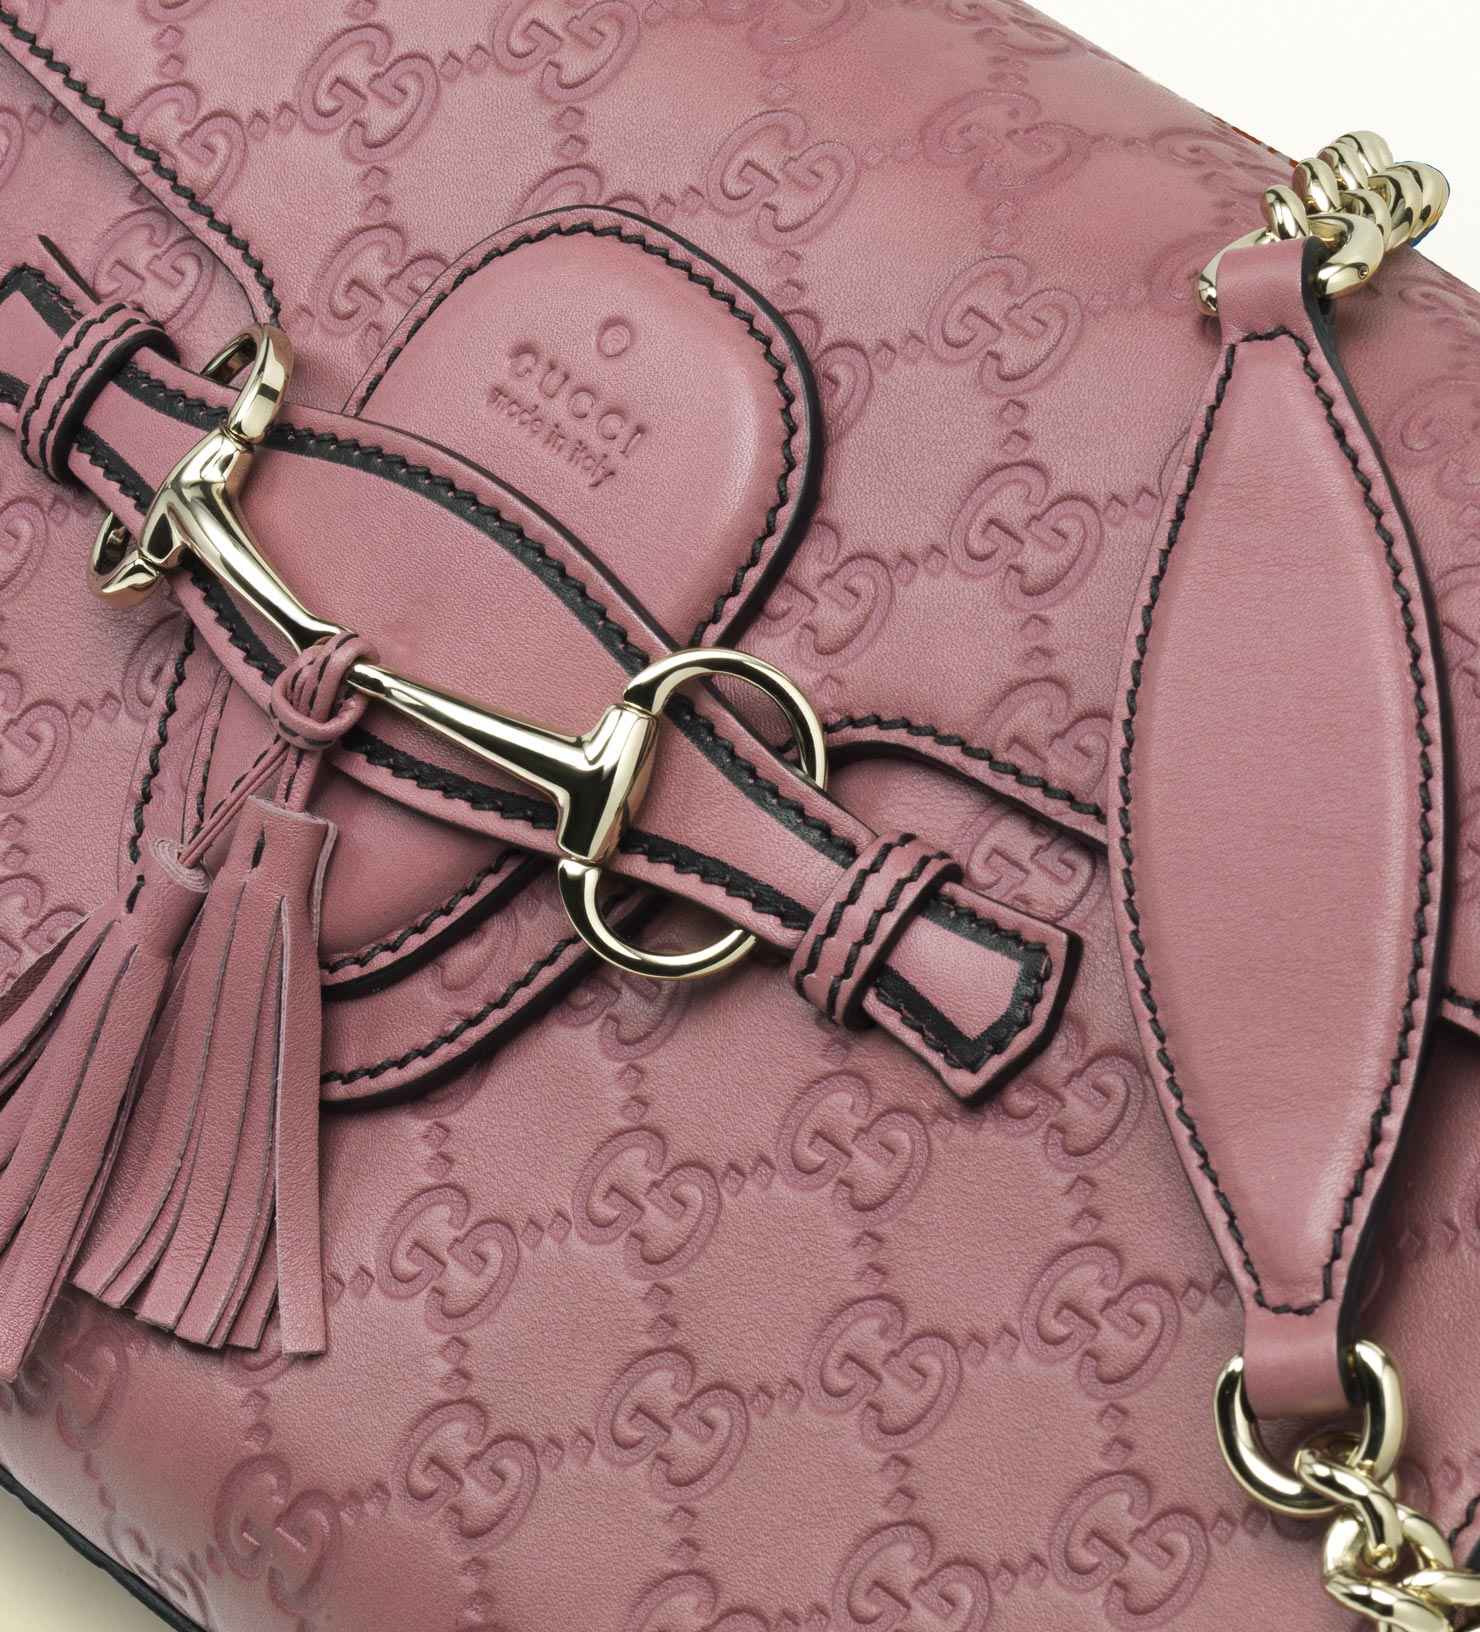 01142f4f8 Gucci Emily Dark Pink Guccissima Chain Shoulder Bag in Pink - Lyst